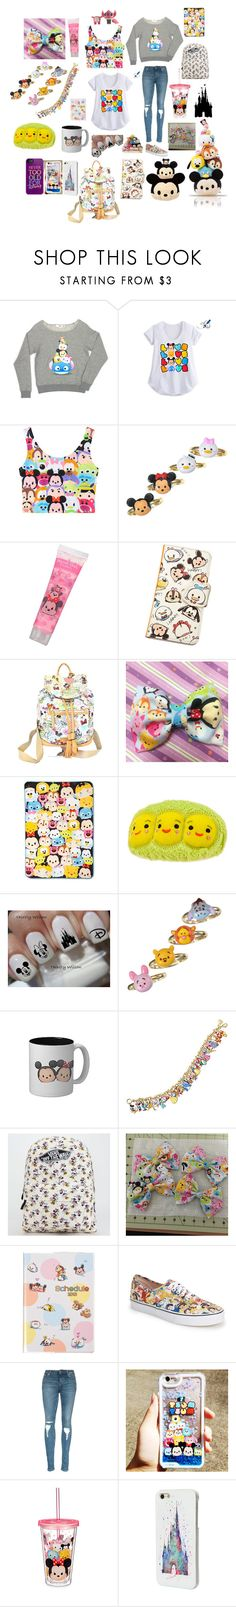 """""""Tsum Tsum Look✨"""" by macaulere ❤ liked on Polyvore featuring Disney, Dooney & Bourke, The Bradford Exchange, Vans, women's clothing, women, female, woman, misses and juniors"""